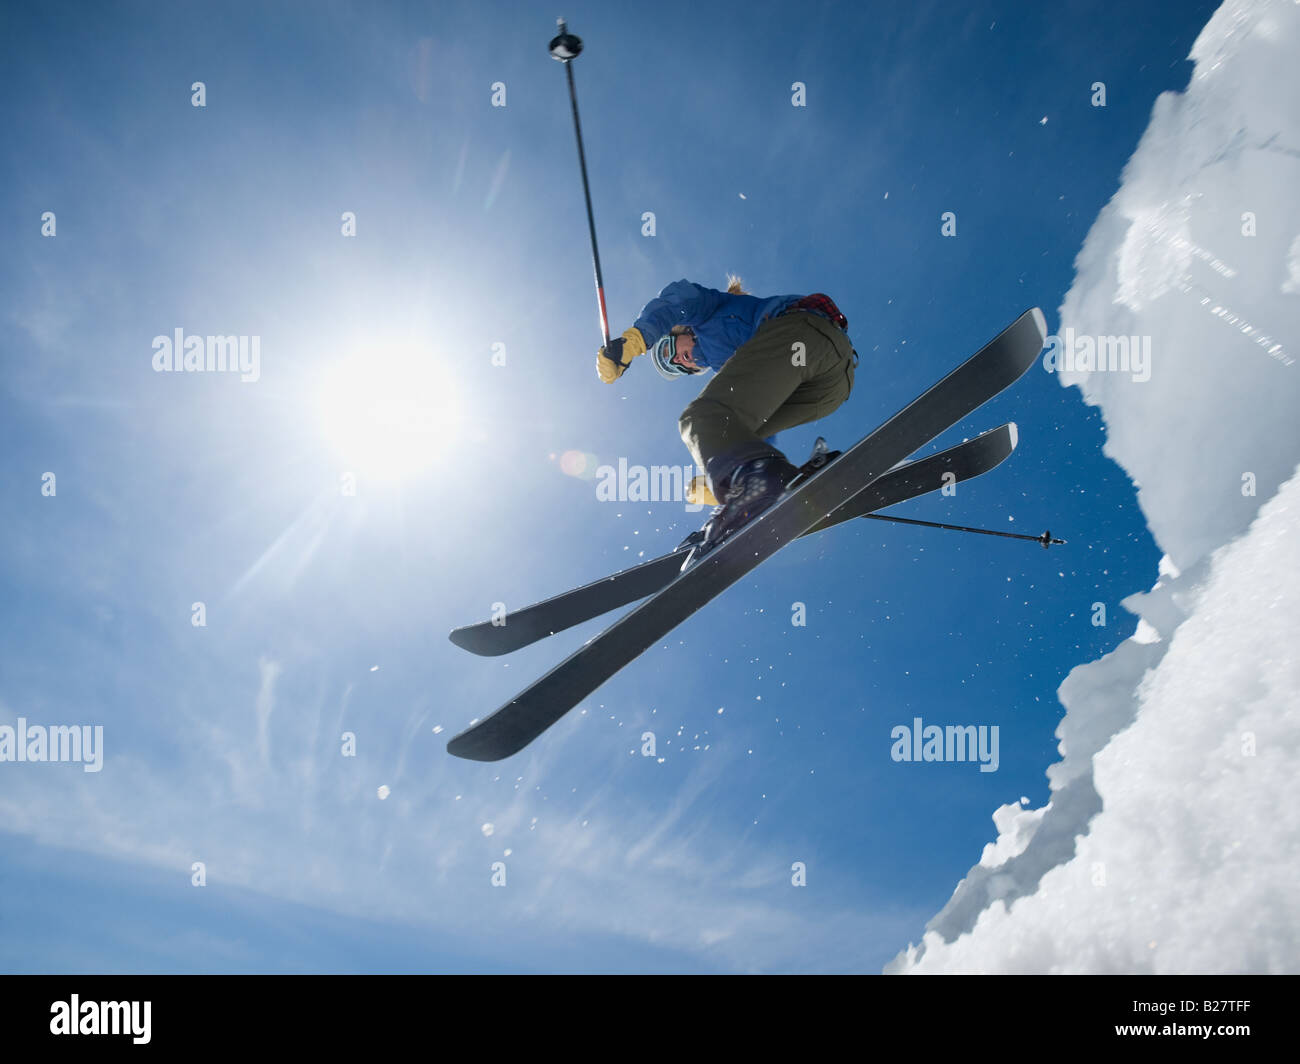 Woman on skis in air Stock Photo